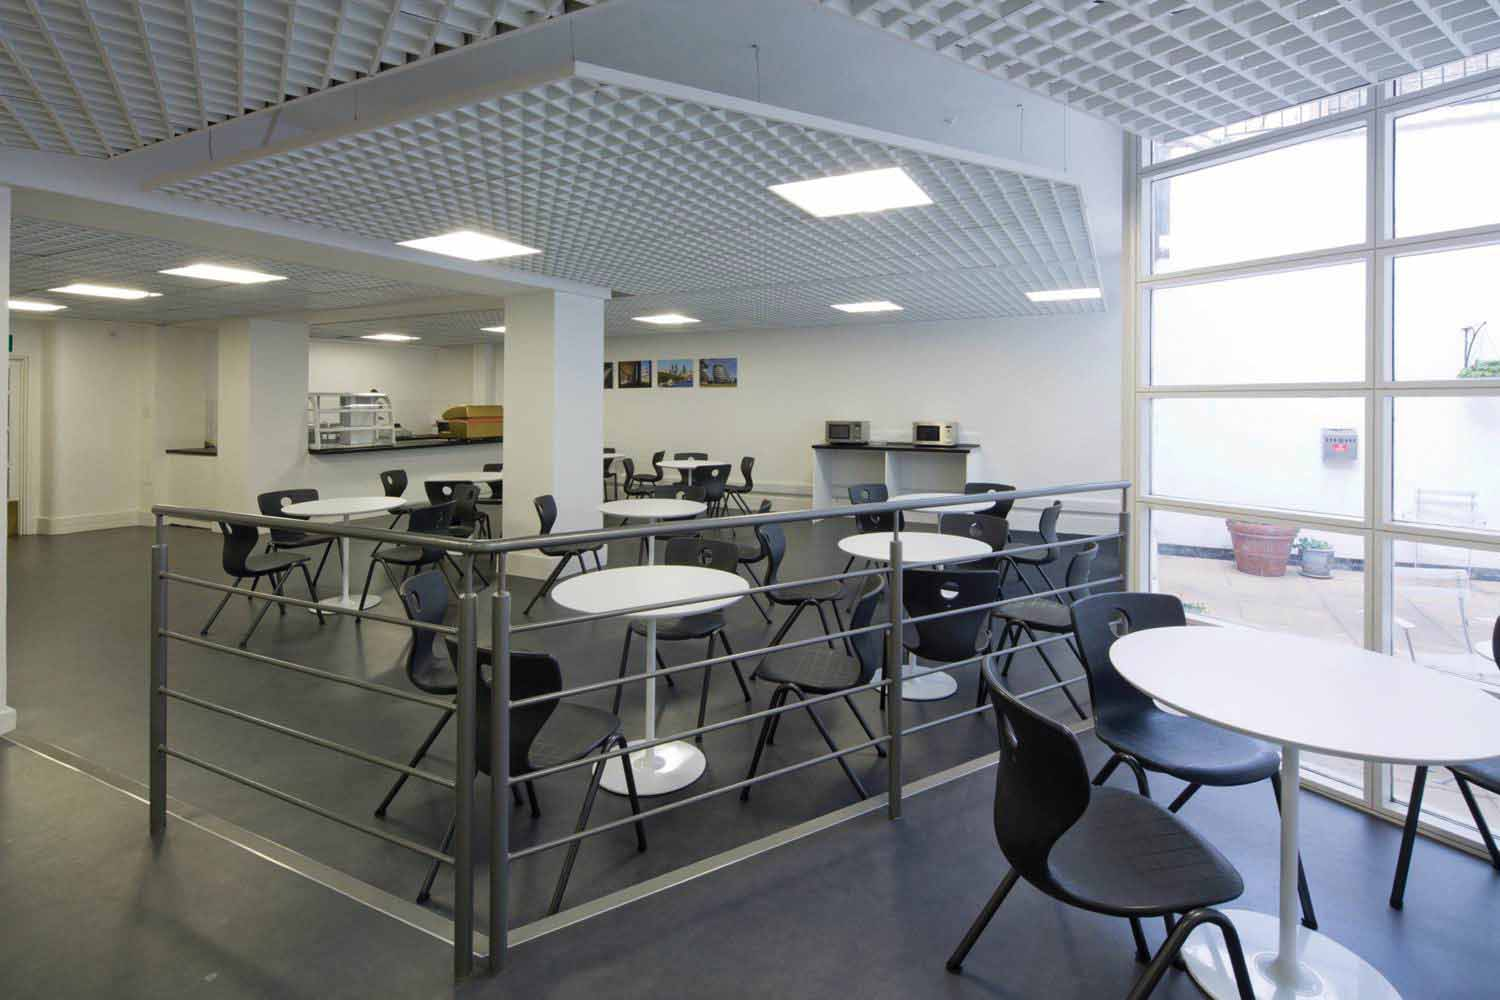 London Central_School_Cafeteria_03